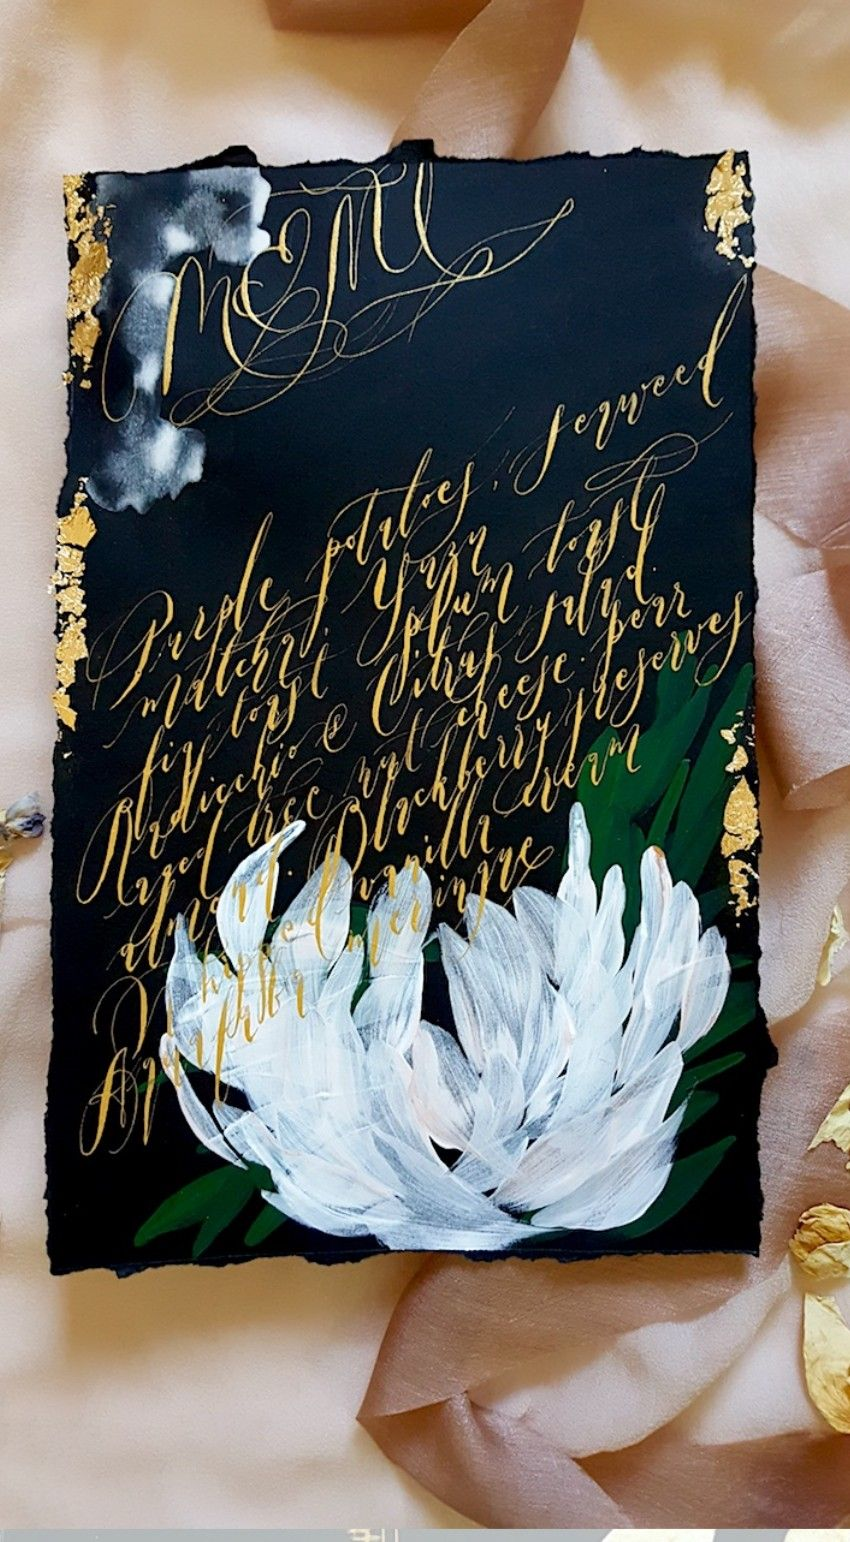 Custom Hand Painted Invitations With Strikingly Deep Hues And Gold